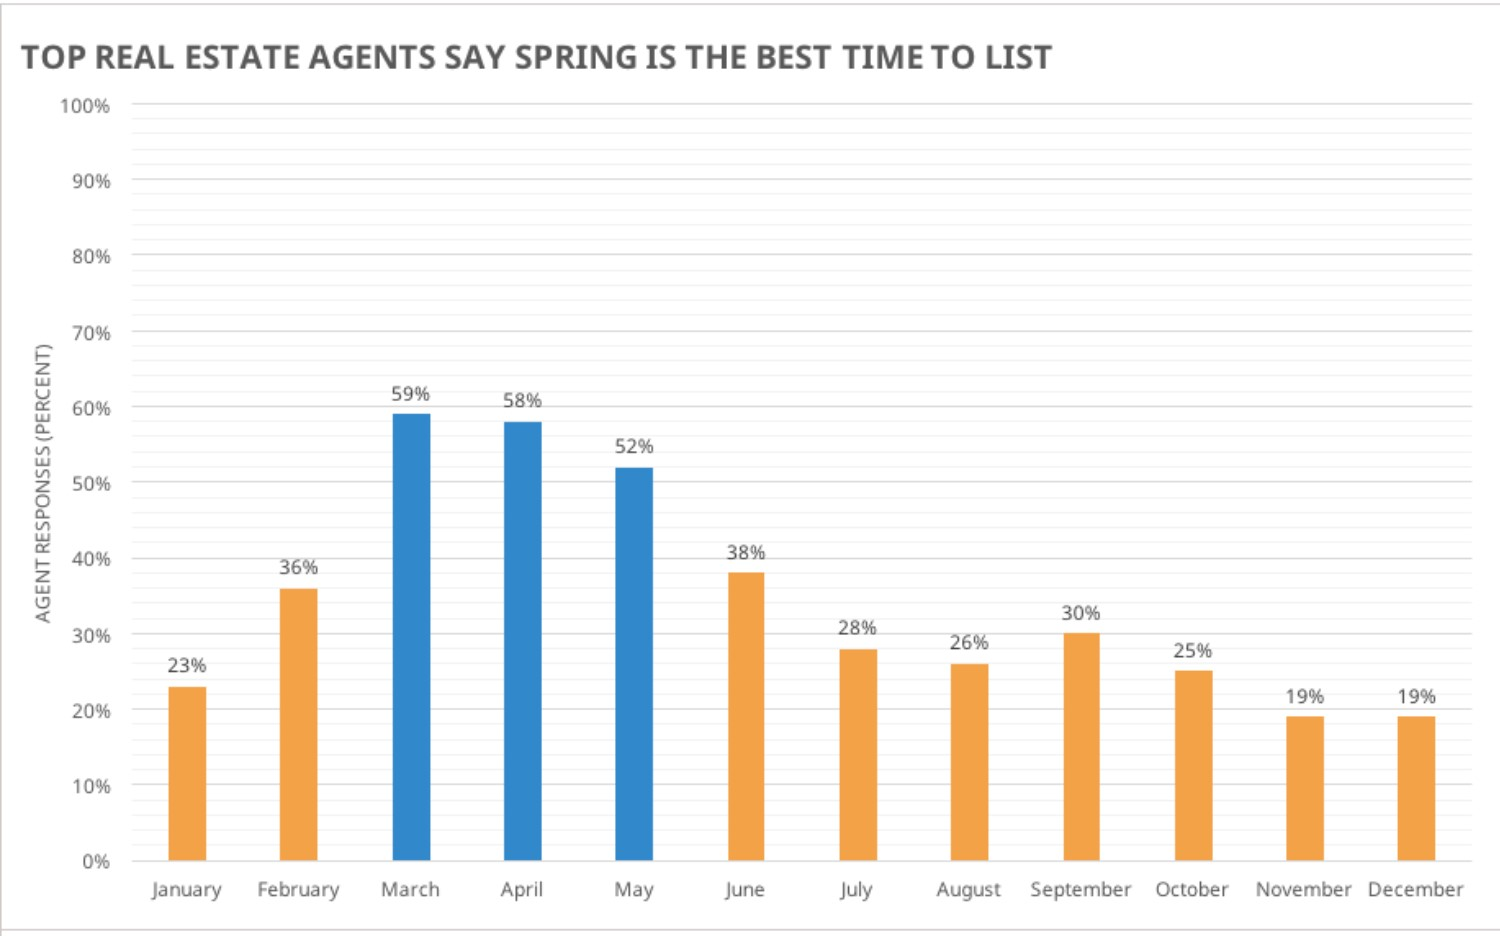 HomeLight National Agent Insights Survey